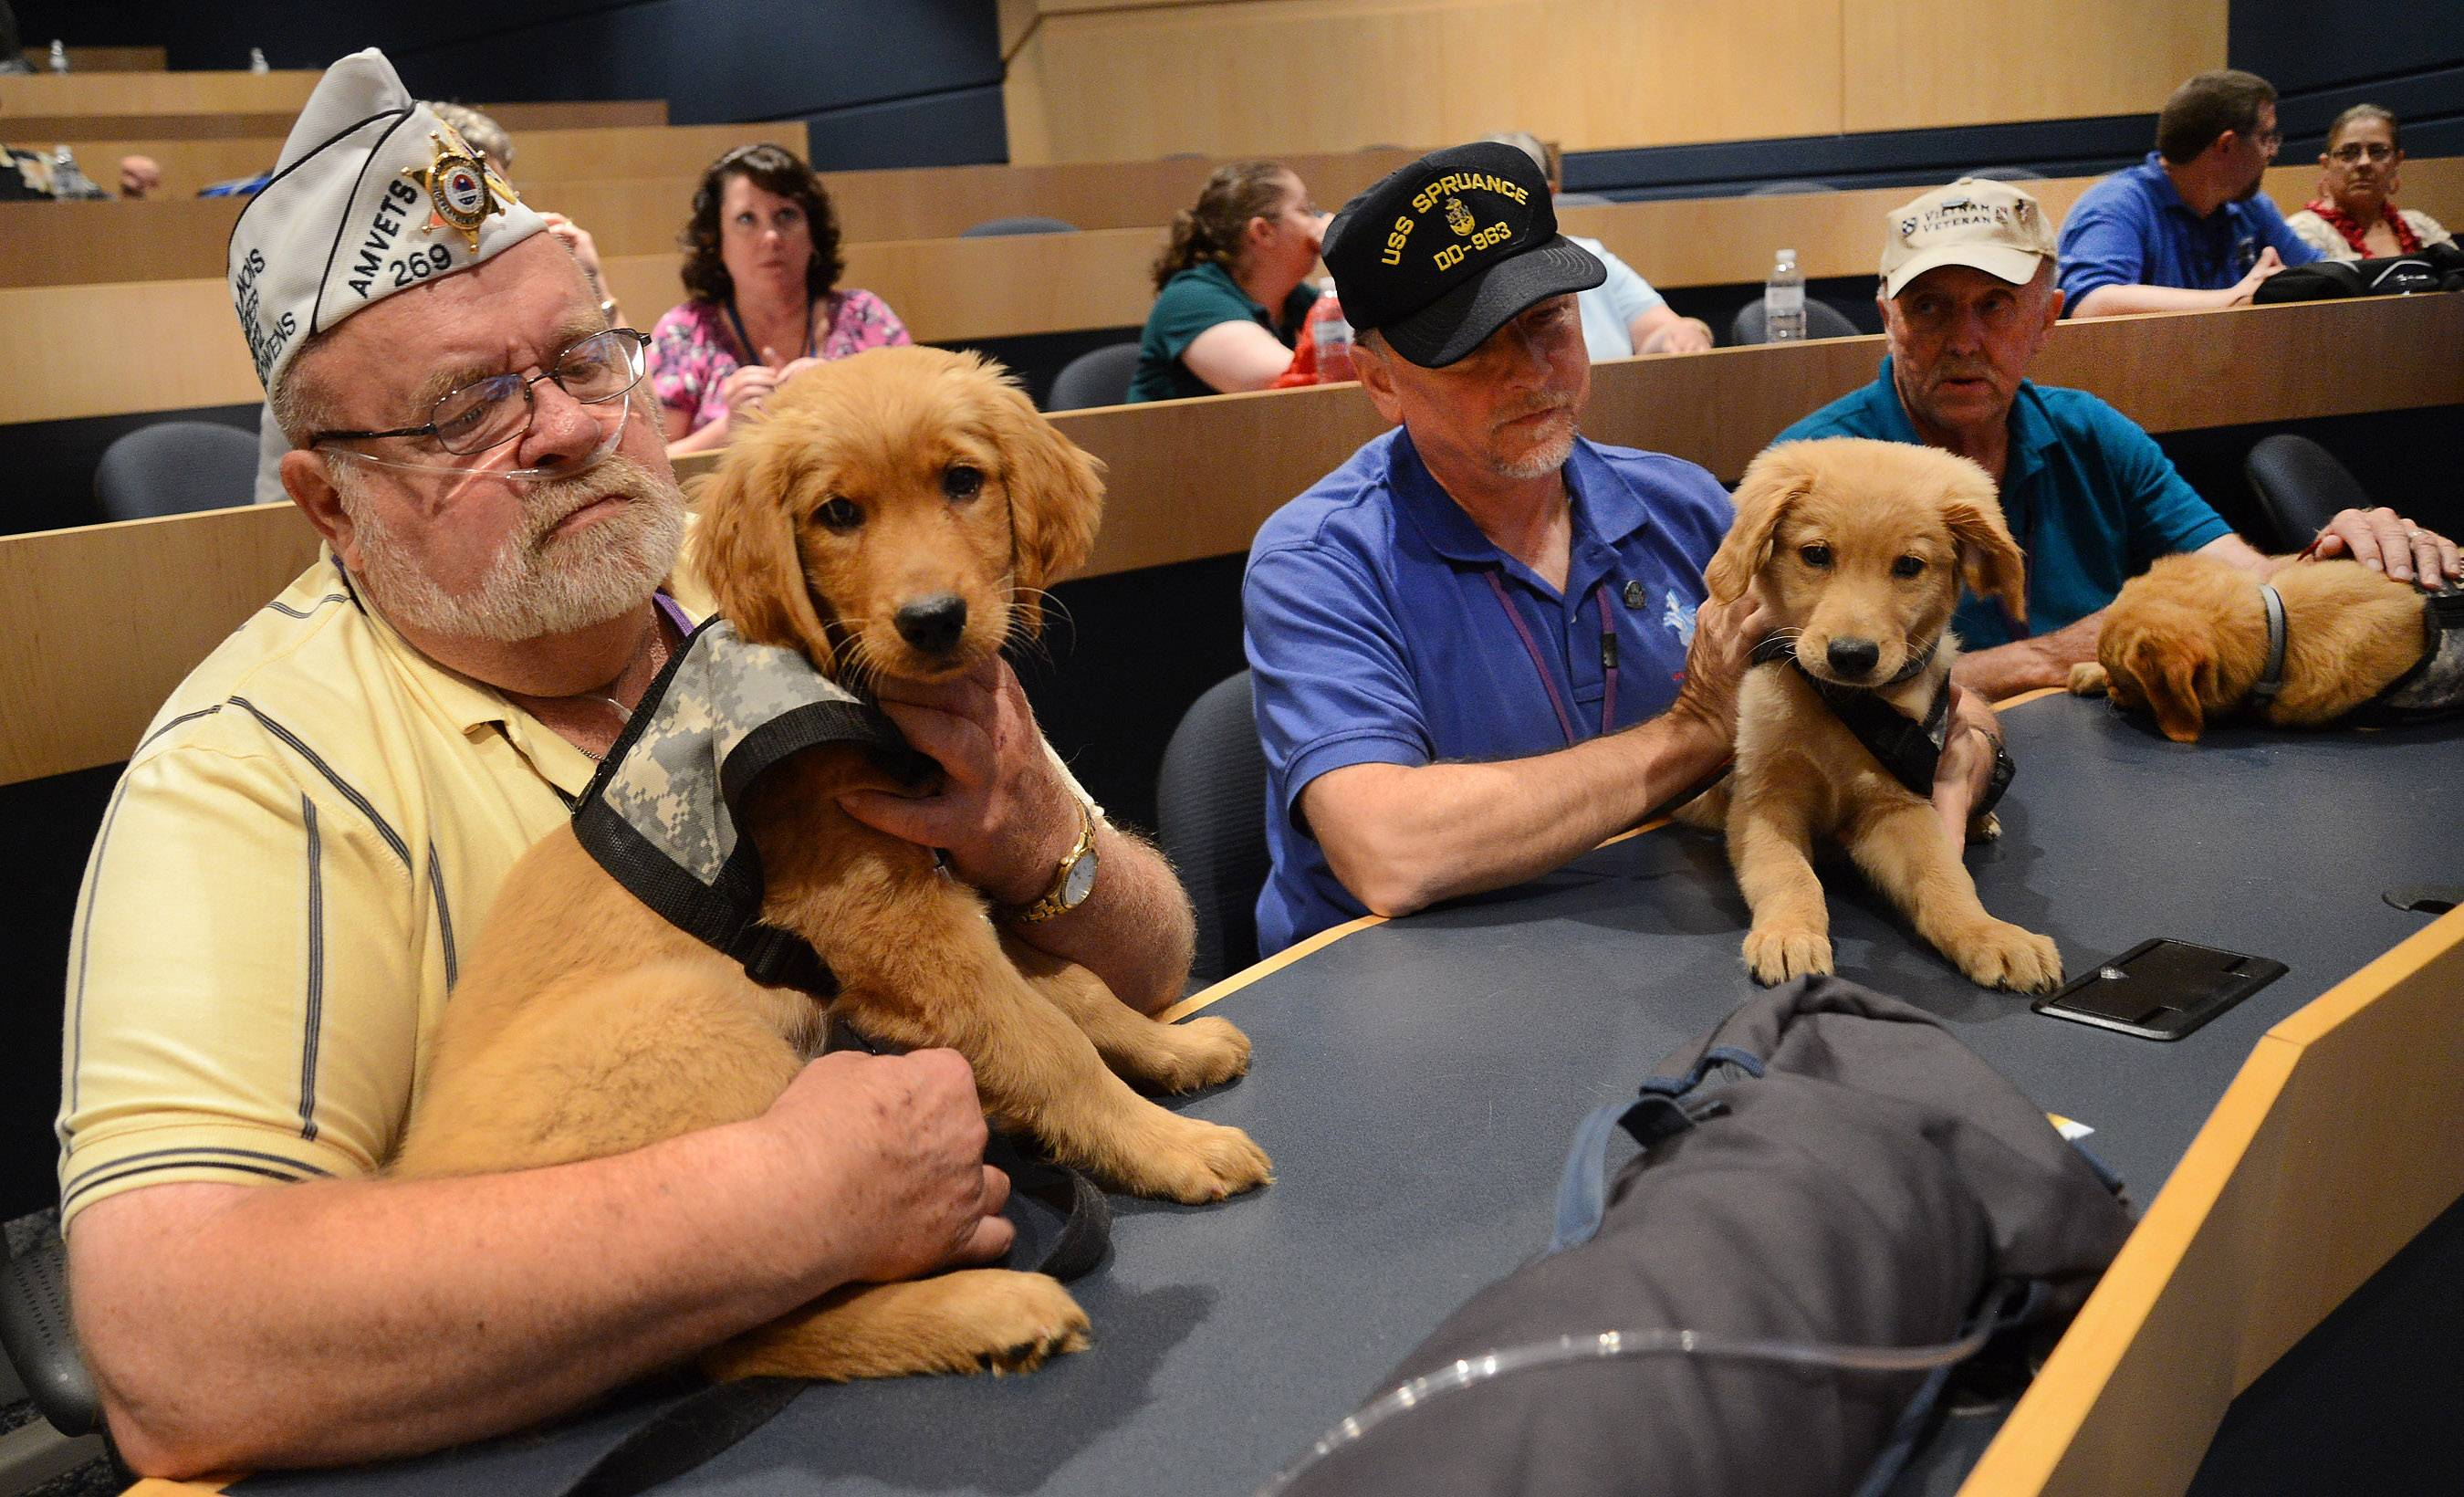 From left, Raleigh Showers of McHenry with his dog Spike, Richard Skinner of Westmont with his dog Apache, and Bob Royce of Schaumburg and his dog Blitz. The Vietnam veterans are training to be dog handlers as part of Lutheran Church Charities Kare-9 Ministry.